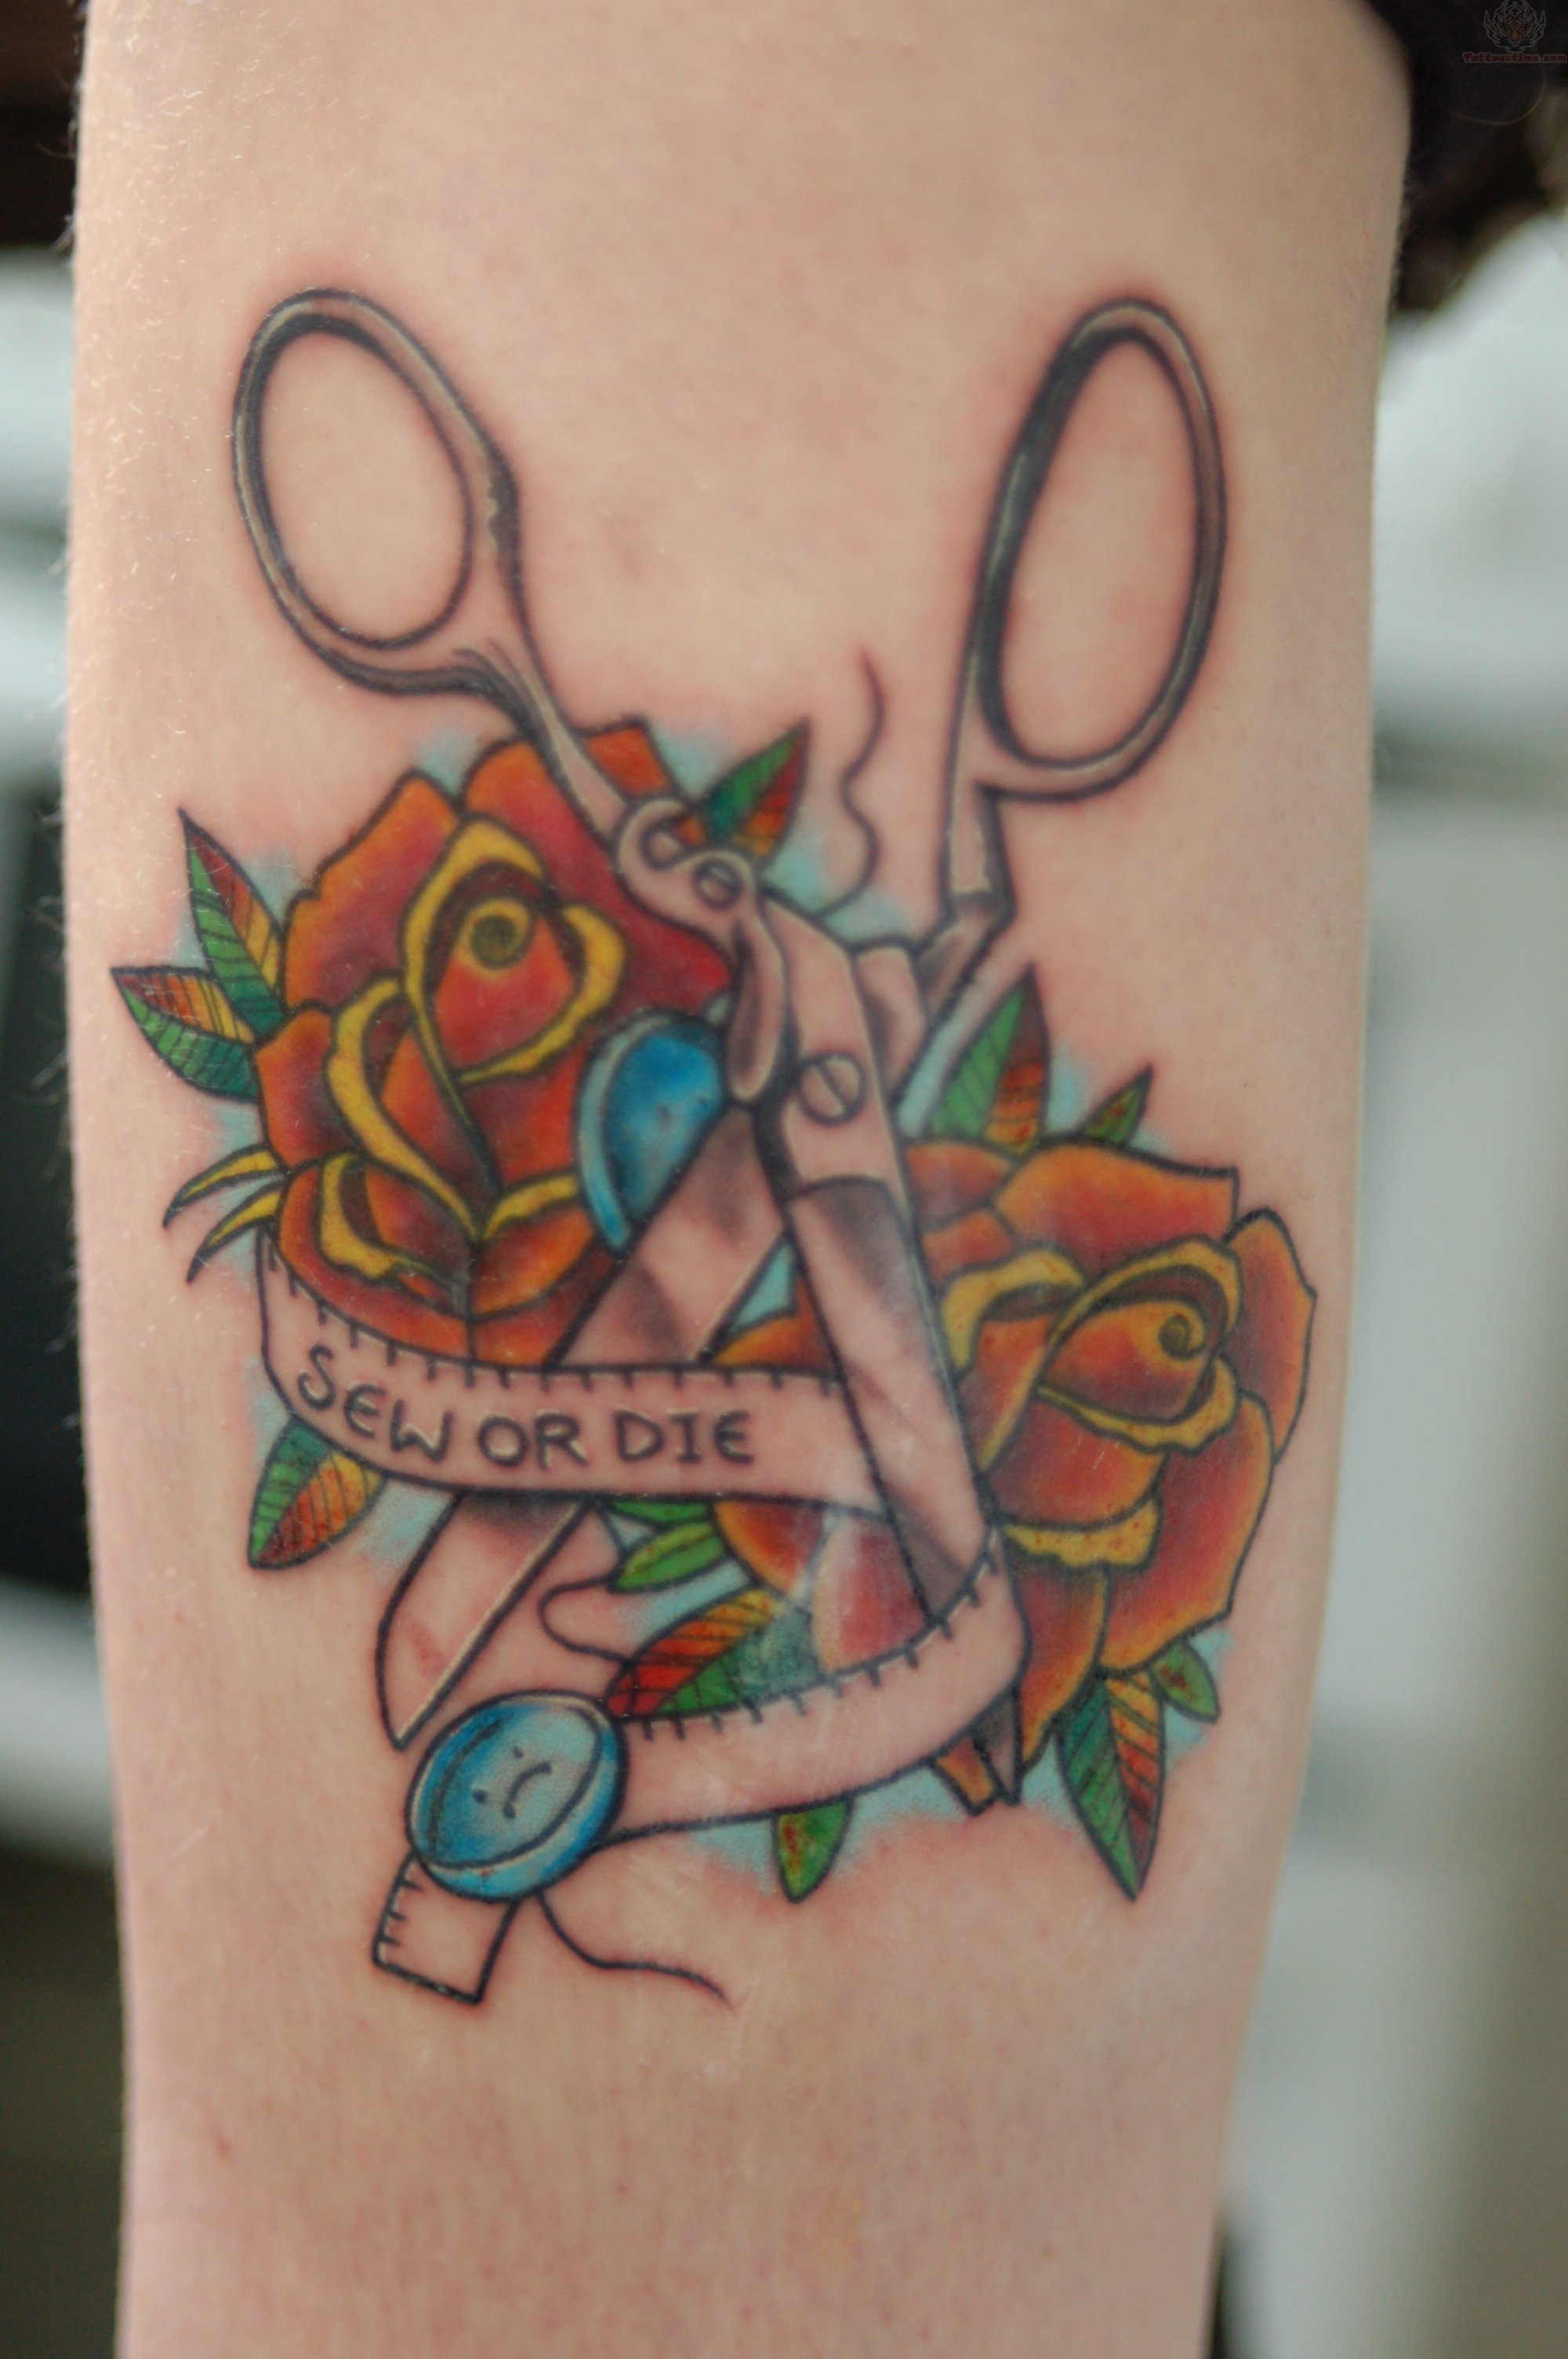 Sewing Scissors Tattoo images